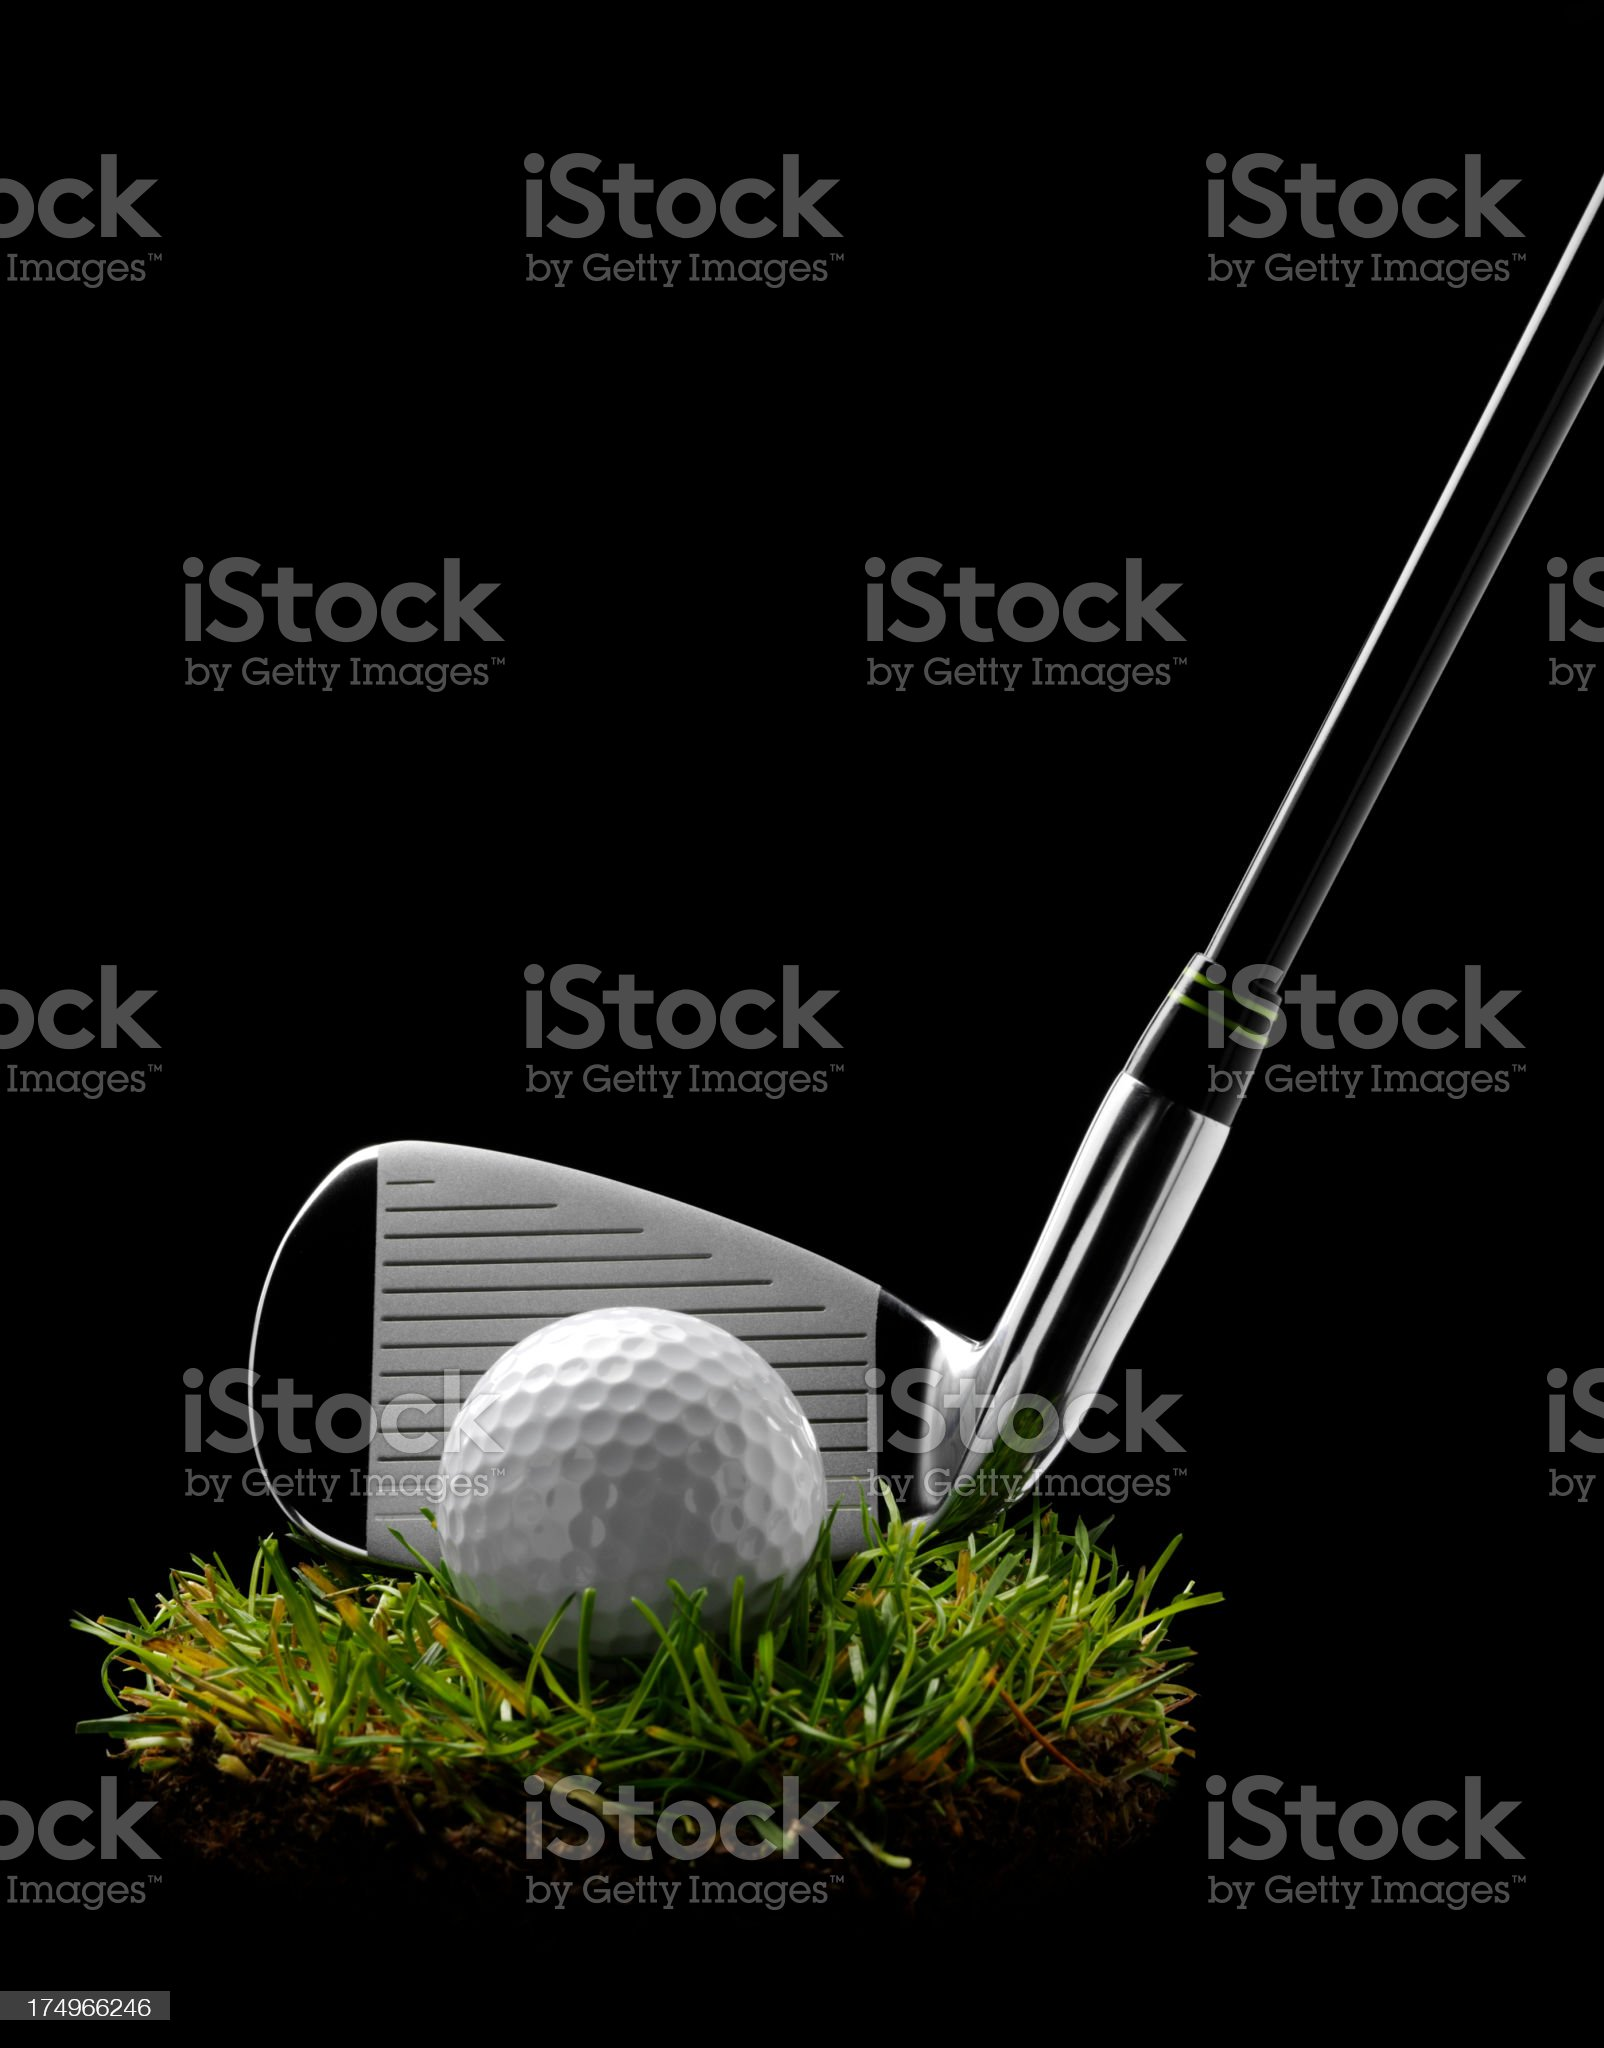 Golf Club and Ball on a Circle of Grass royalty-free stock photo